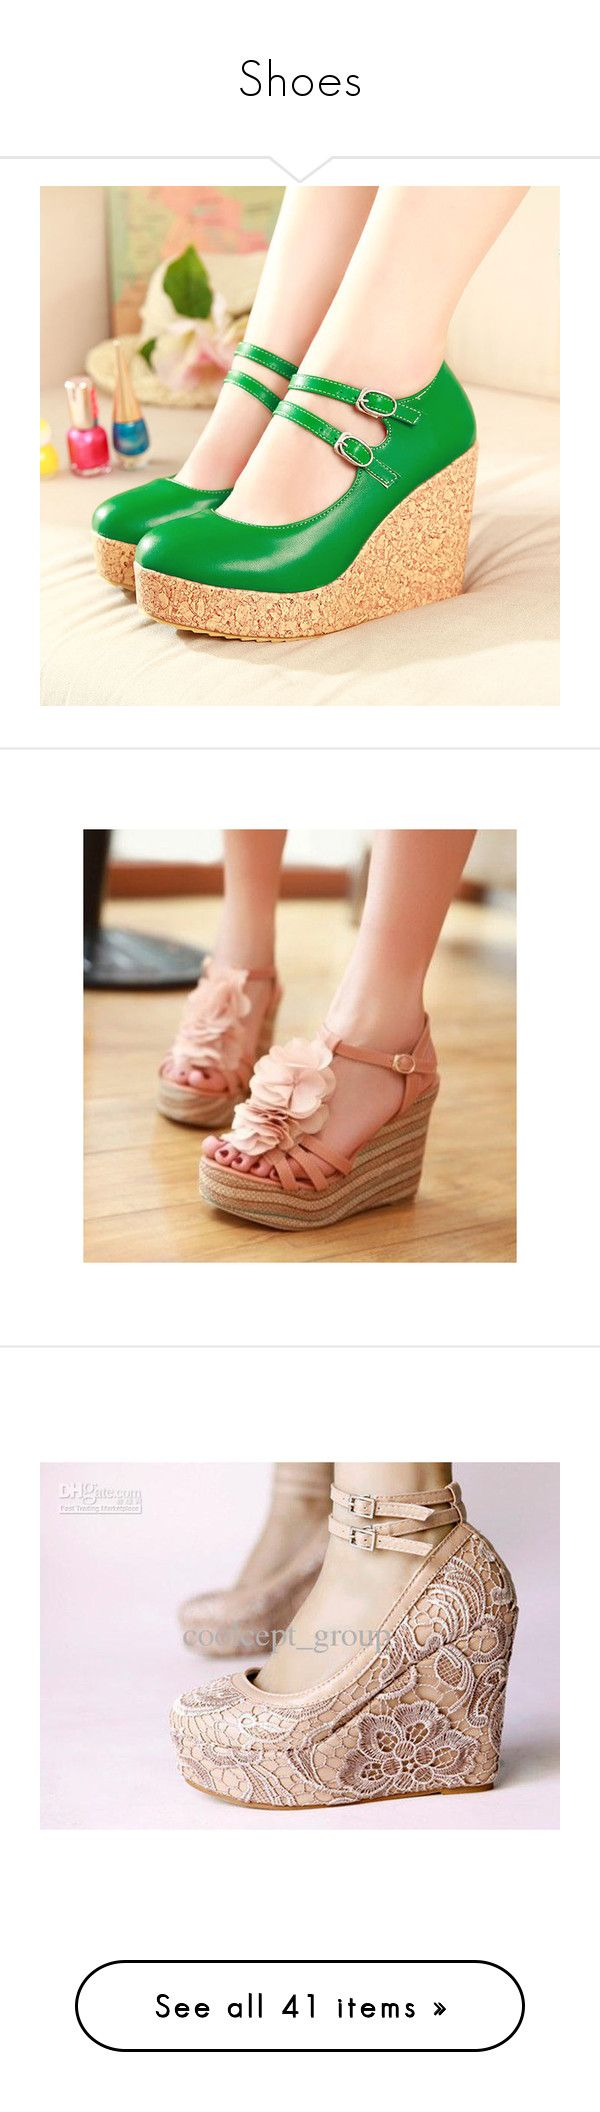 """""""Shoes"""" by foreverhomestuck413 ❤ liked on Polyvore featuring shoes, pumps, green pumps, wedge mary janes, orange wedge shoes, round toe mary jane pumps, wedge pumps, sandals, wedge heeled shoes and evening wedge shoes"""